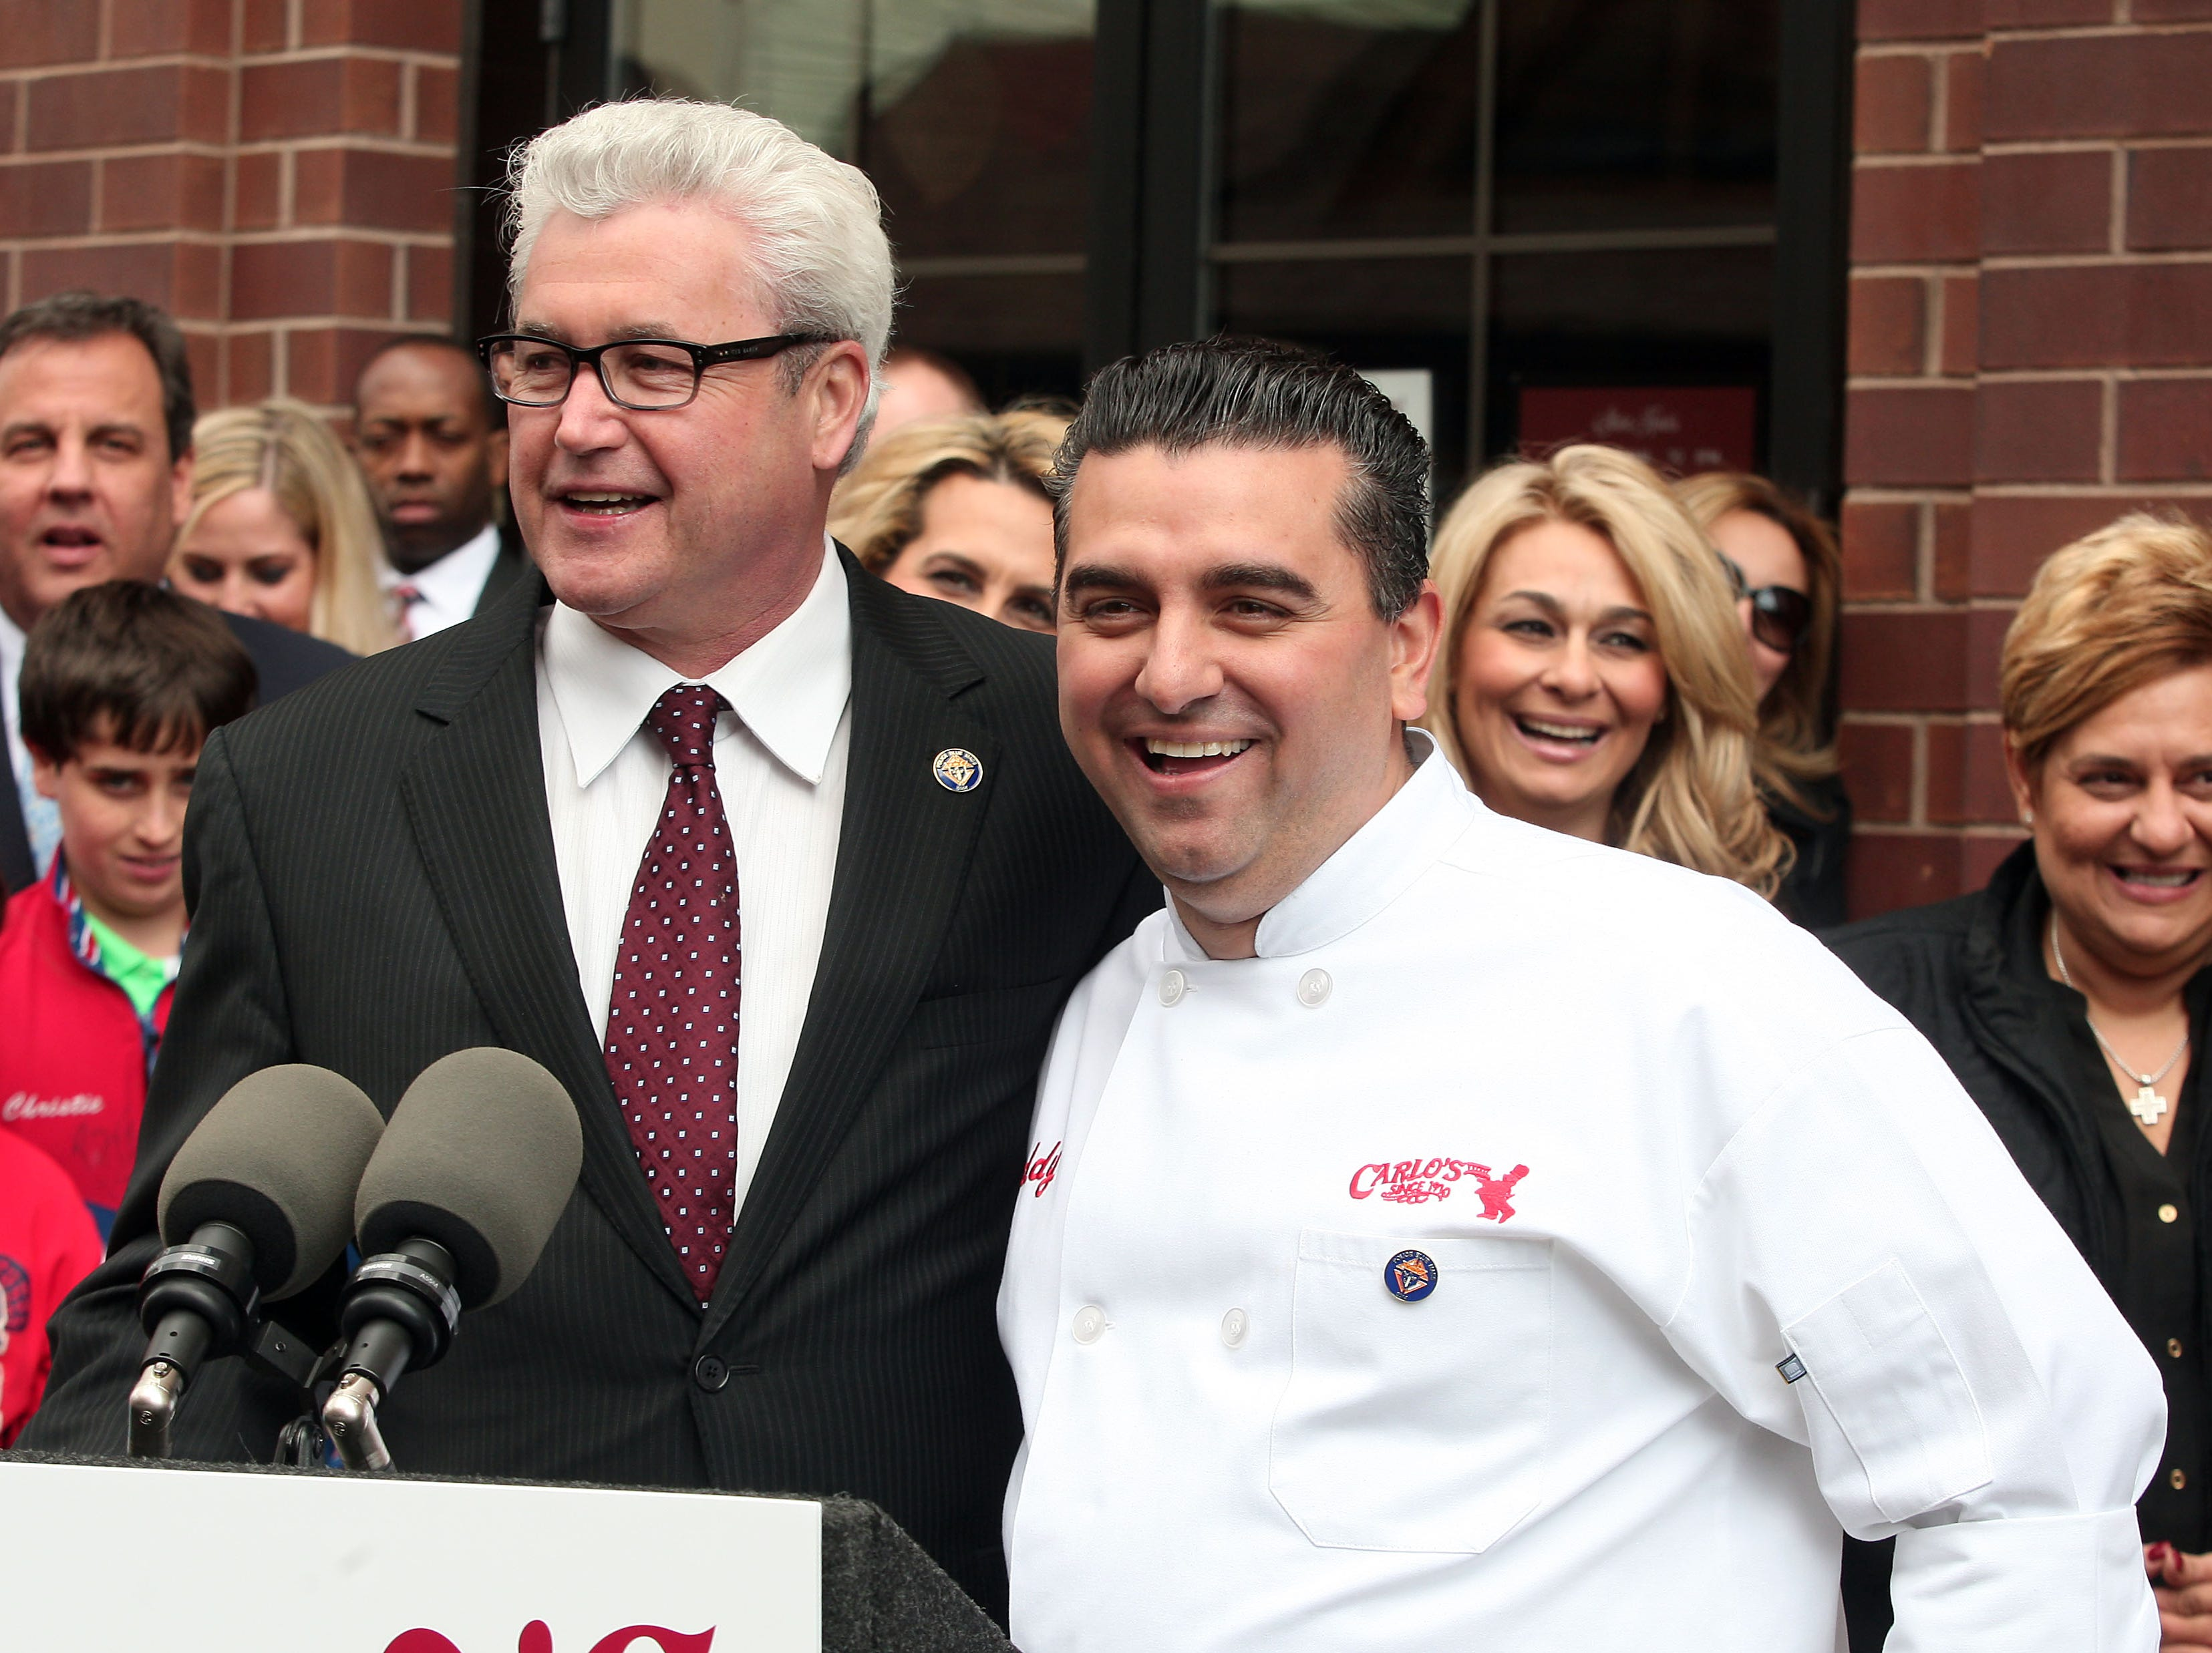 Cake Boss, Buddy Valastro opens his newest Carlo's Bakery in Morristown. The Grand Opening was attended by New Jersey Governor Chris Christie as well as other dignitaries. March 20, 2014, Morristown, NJ. Bob Karp/staff photographer